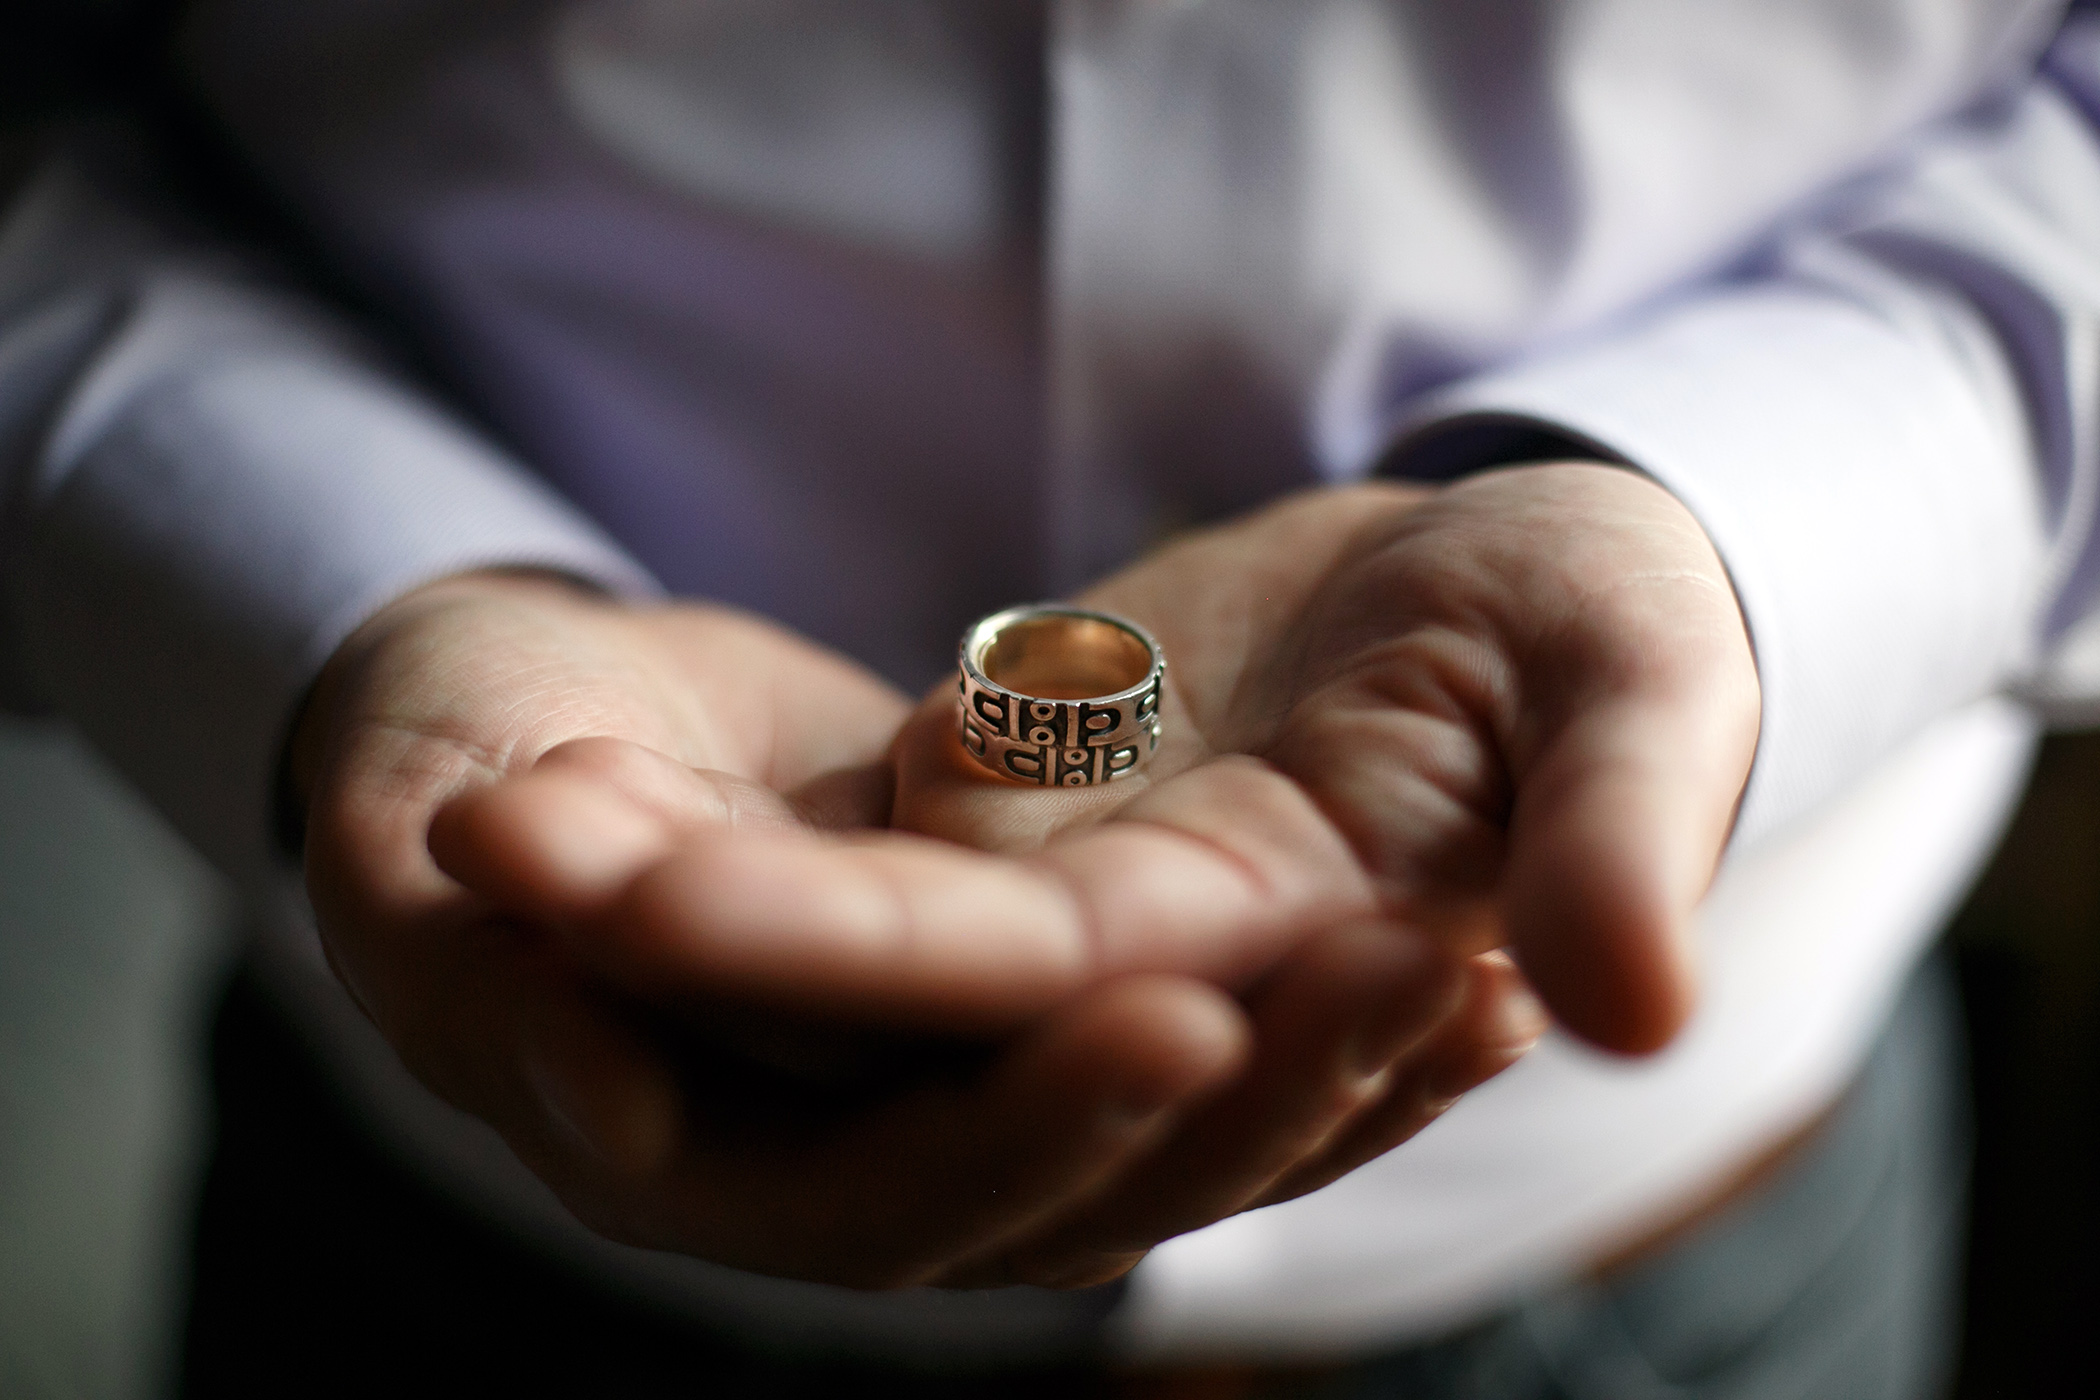 Jim Obergefell was married to his husband John Arthur on a medical jet in Maryland shortly before Arthur died of ALS. Obergefell holds his wedding band that has been fused together with Arthur's ashes and wedding ring.